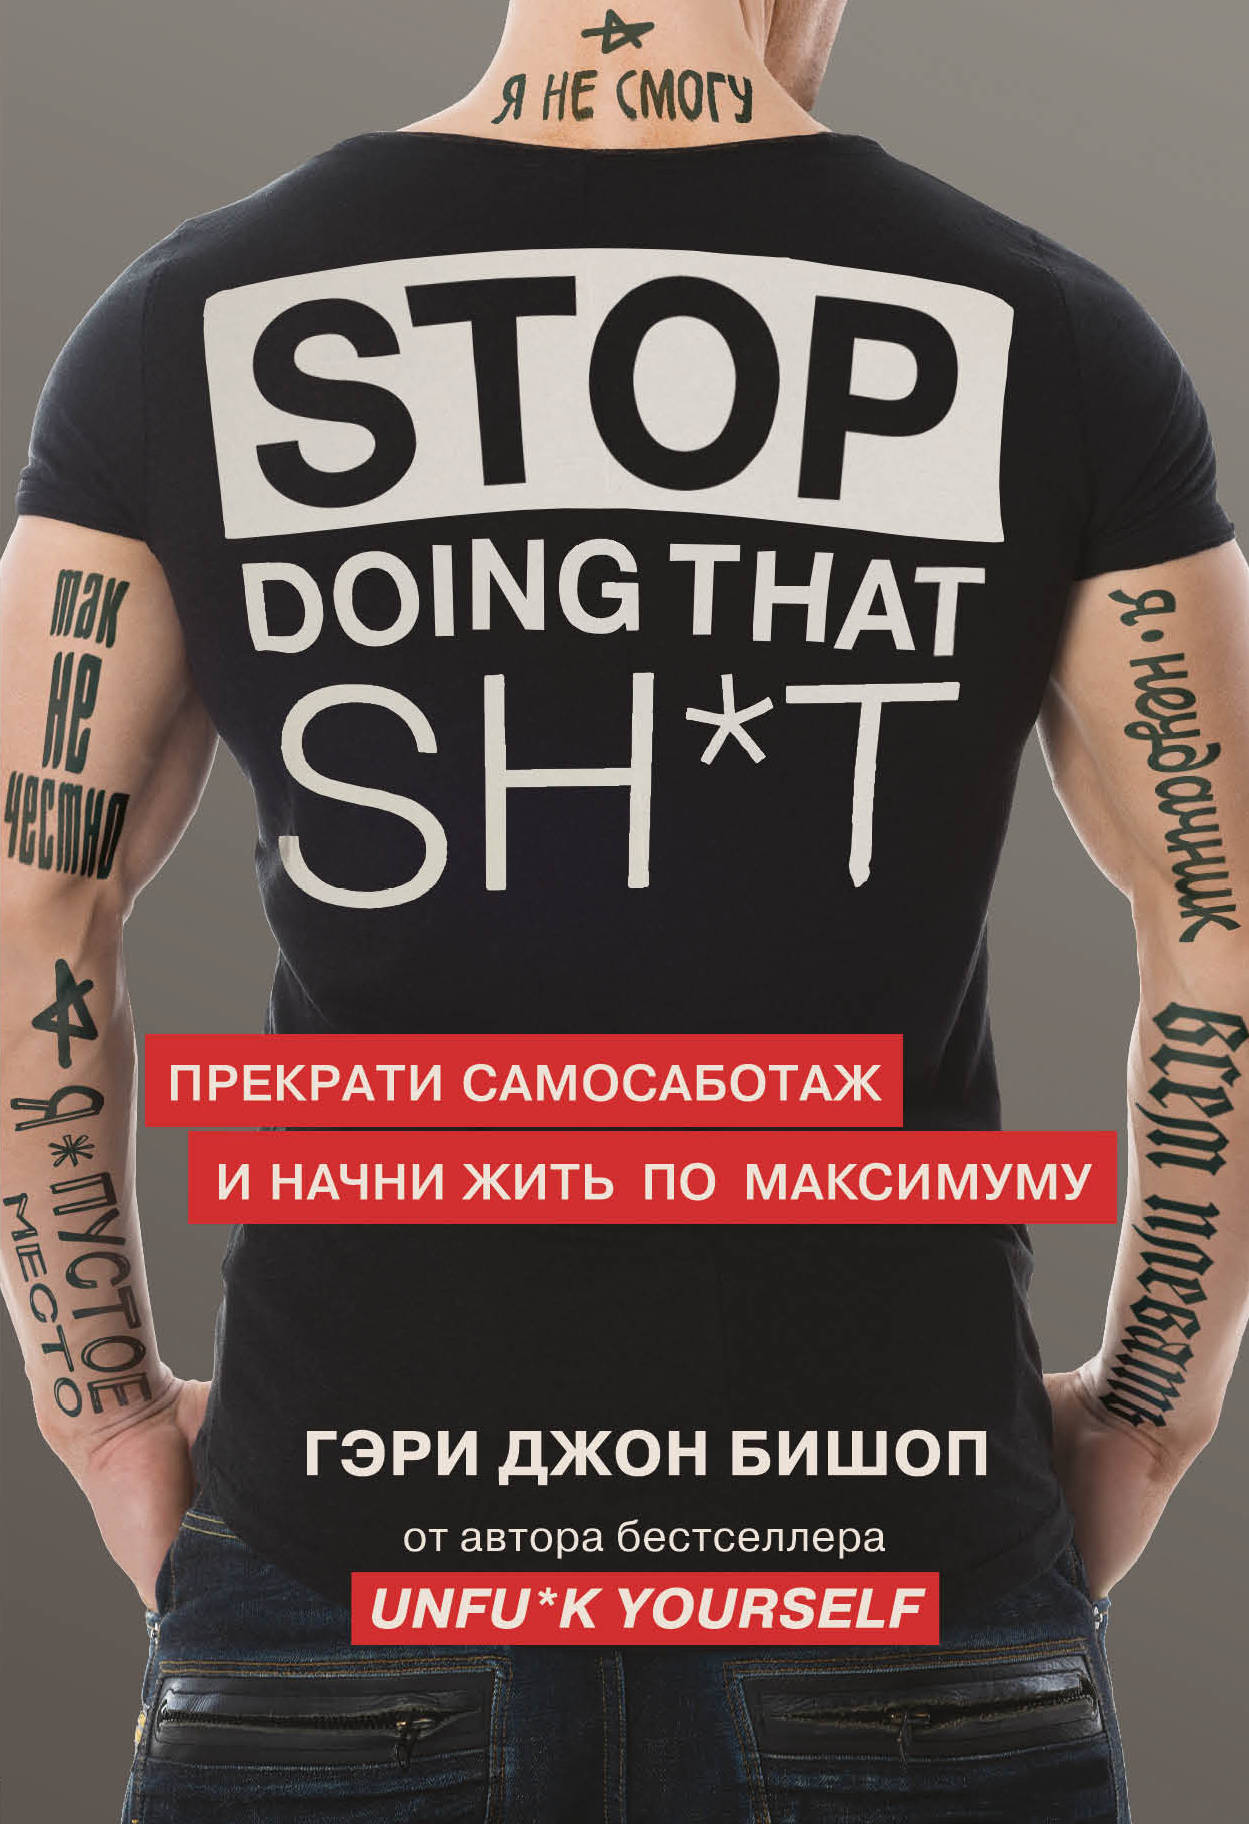 Бишоп Г.Дж Stop doing that shit. Прекрати самосаботаж и начни жить по максимуму